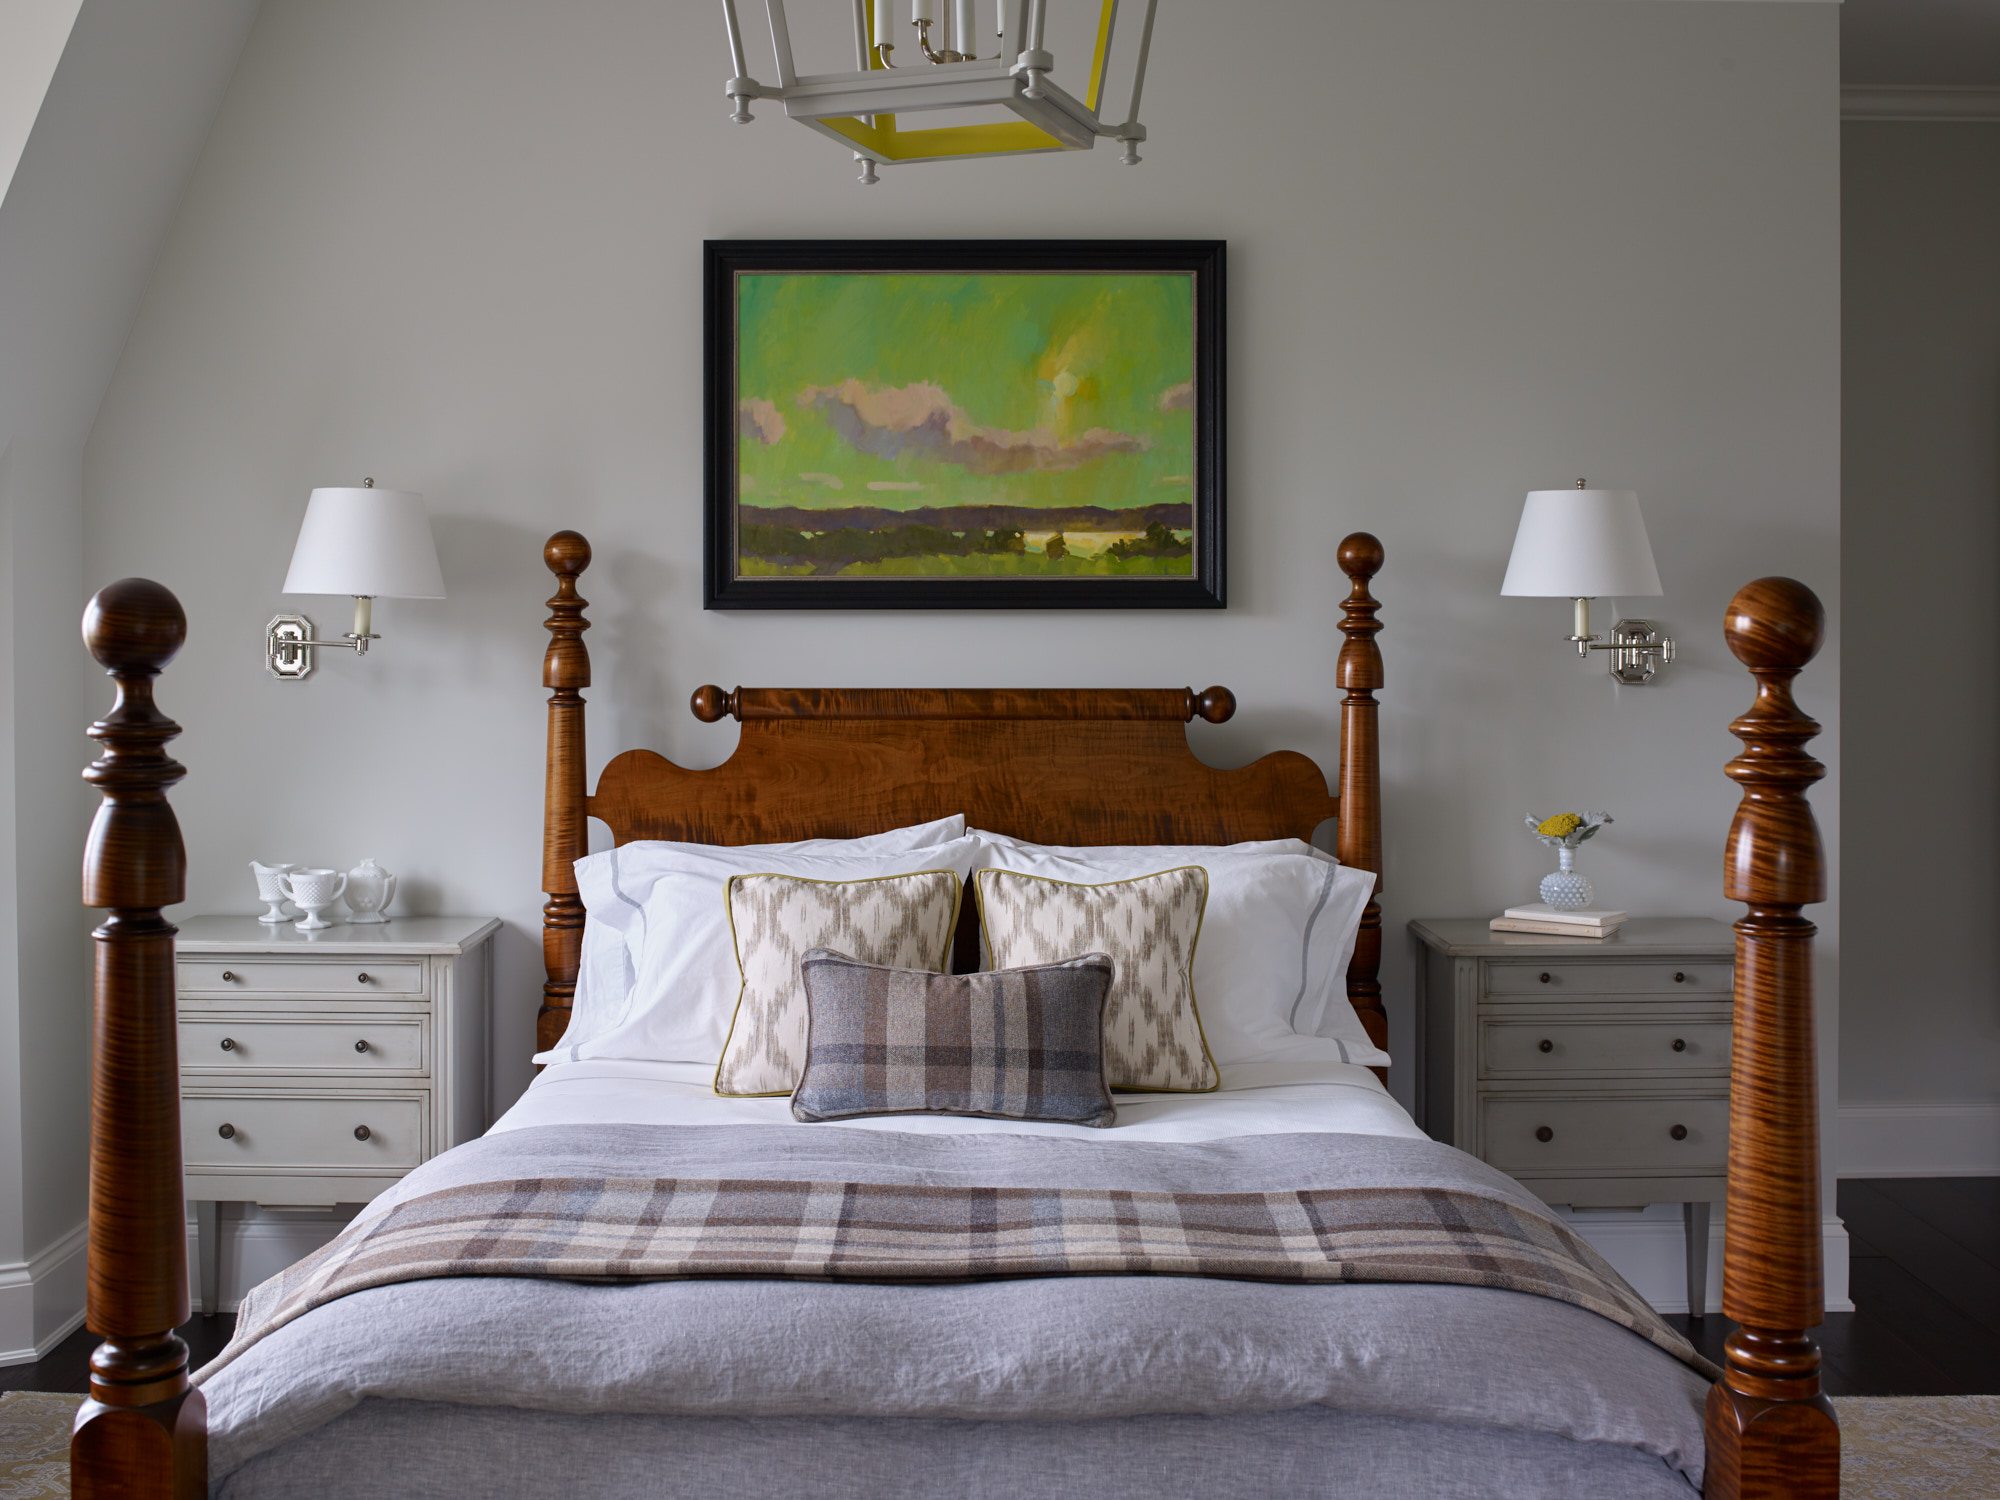 Bedroom at Salacia home with cozy accents